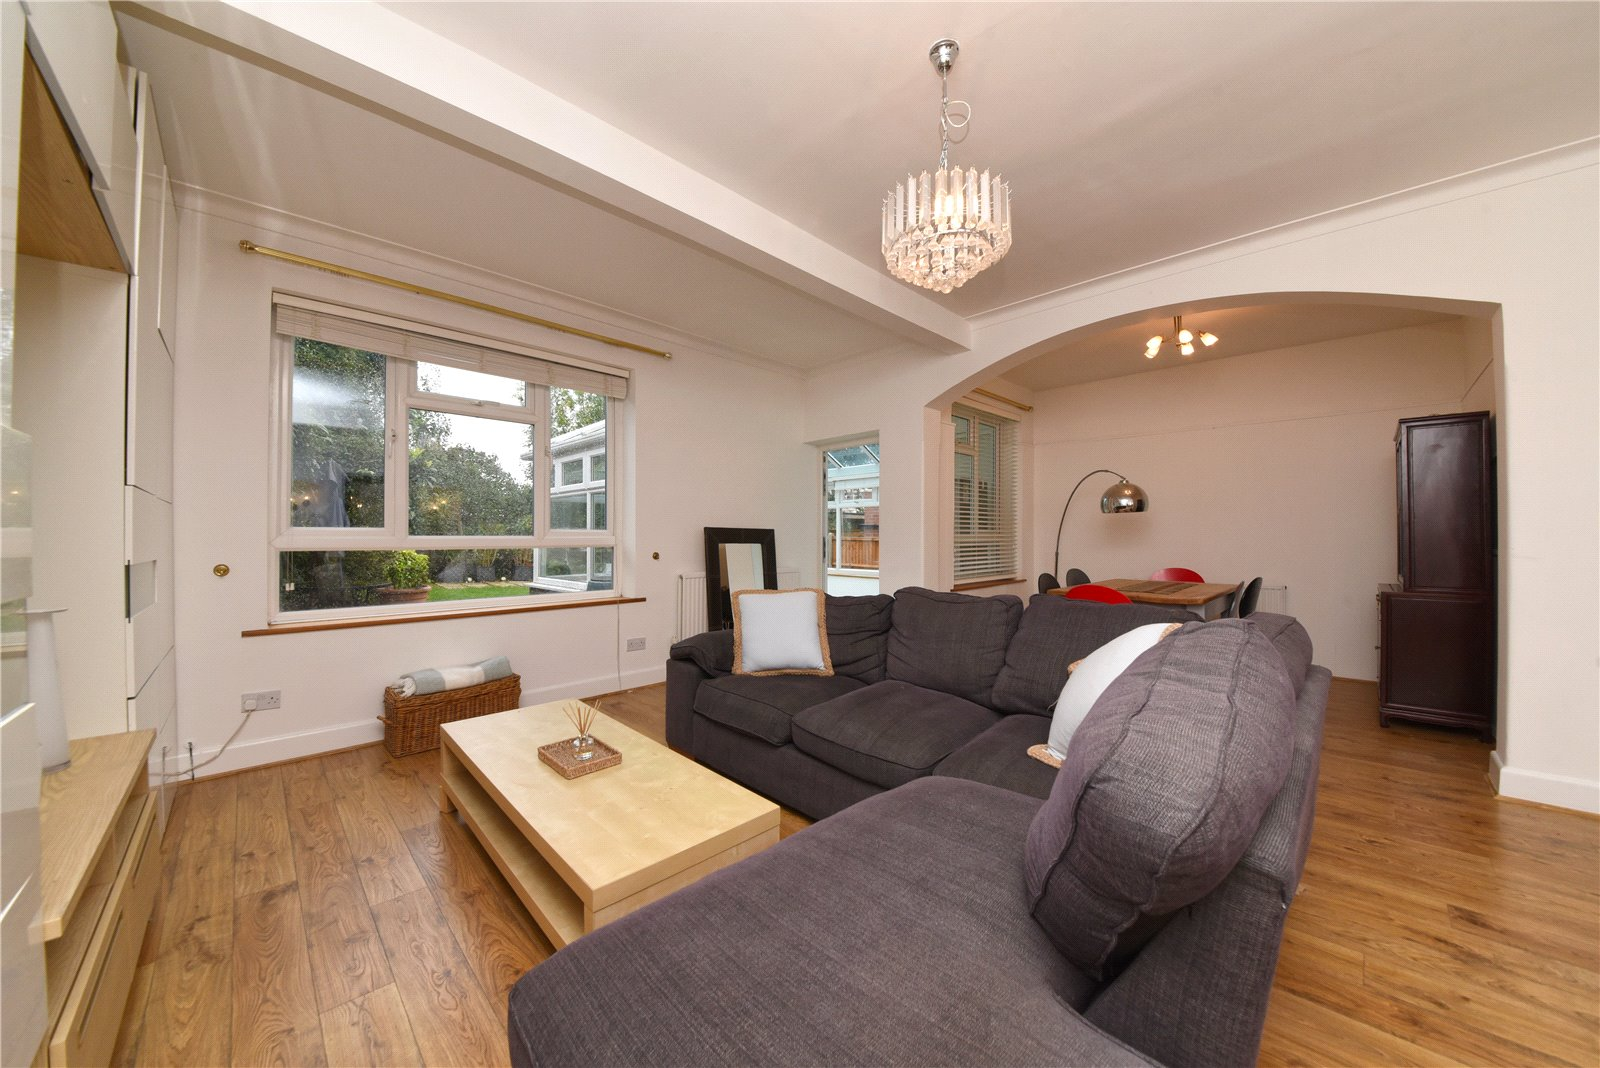 3 bed house for sale in High Barnet, EN5 1AL  - Property Image 7